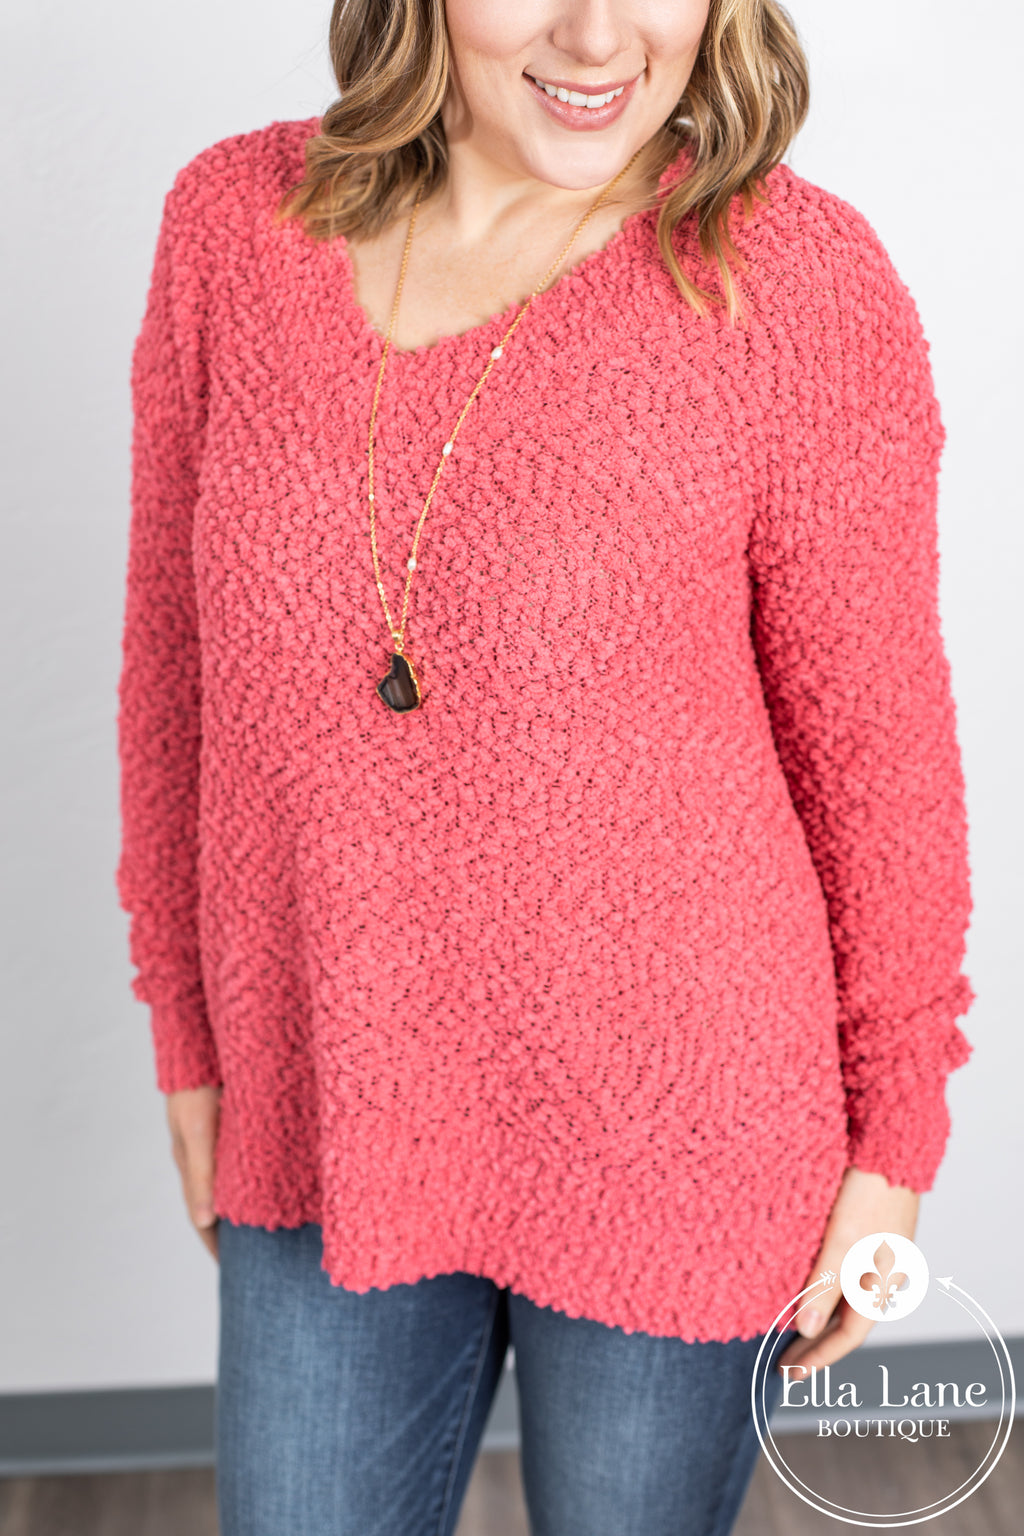 Popcorn V Neck Sweater - Rose